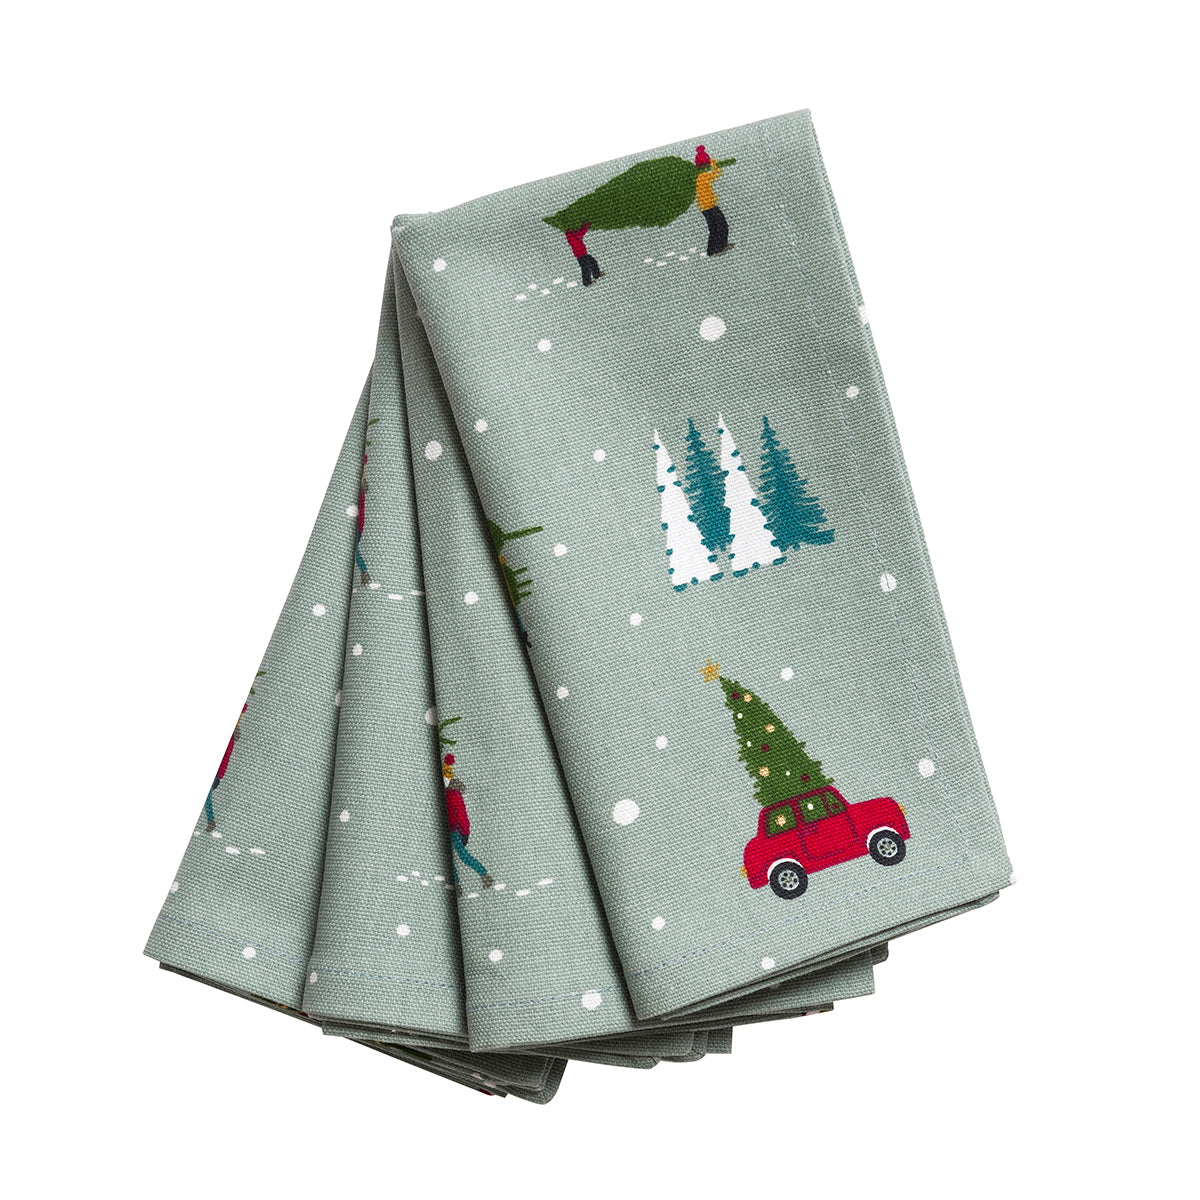 Home for Christmas Napkins (Set of 4)